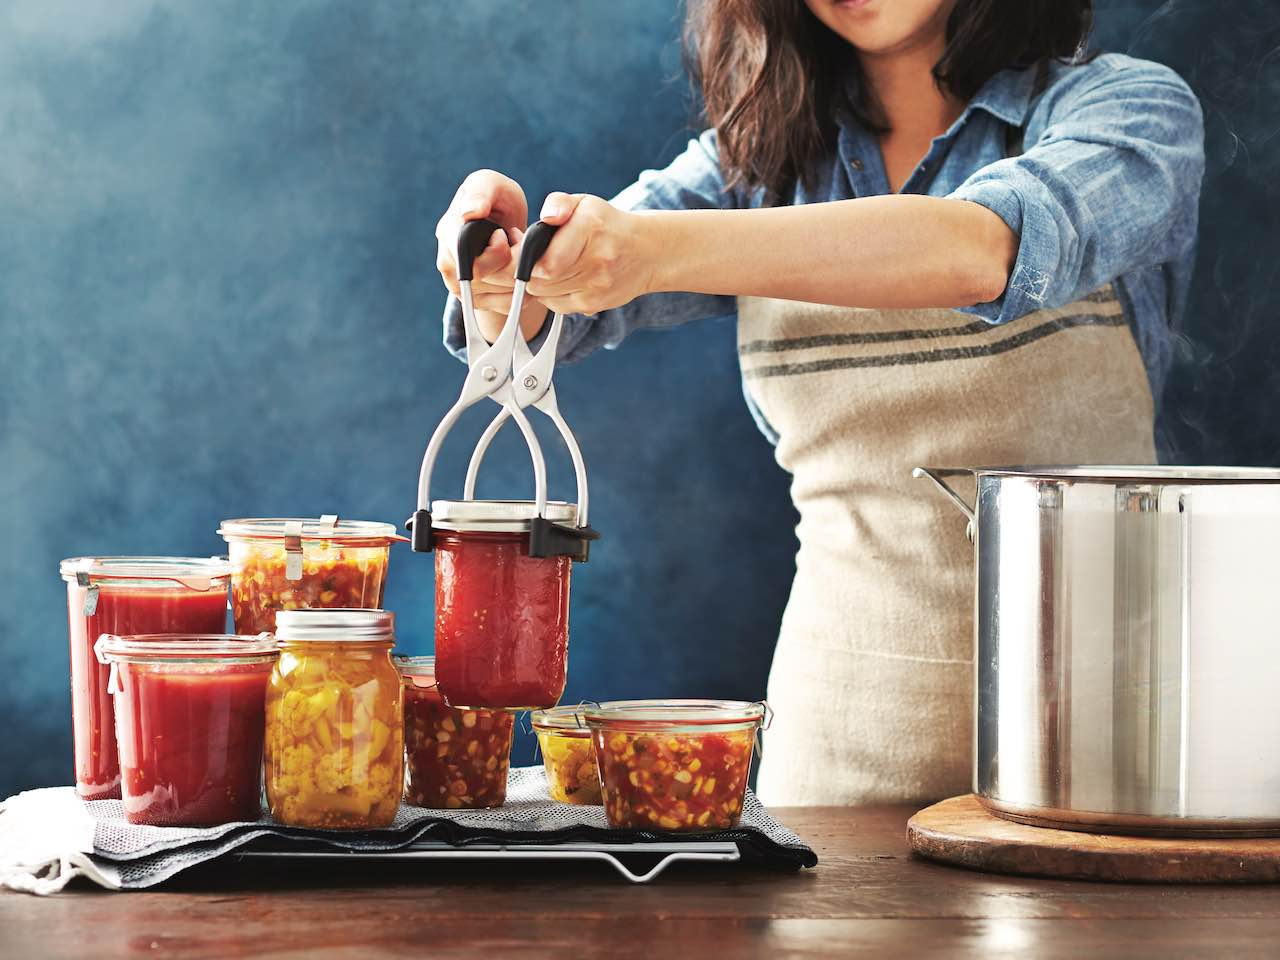 How to make preserved tomatoes: woman lifting can of preserved tomatoes